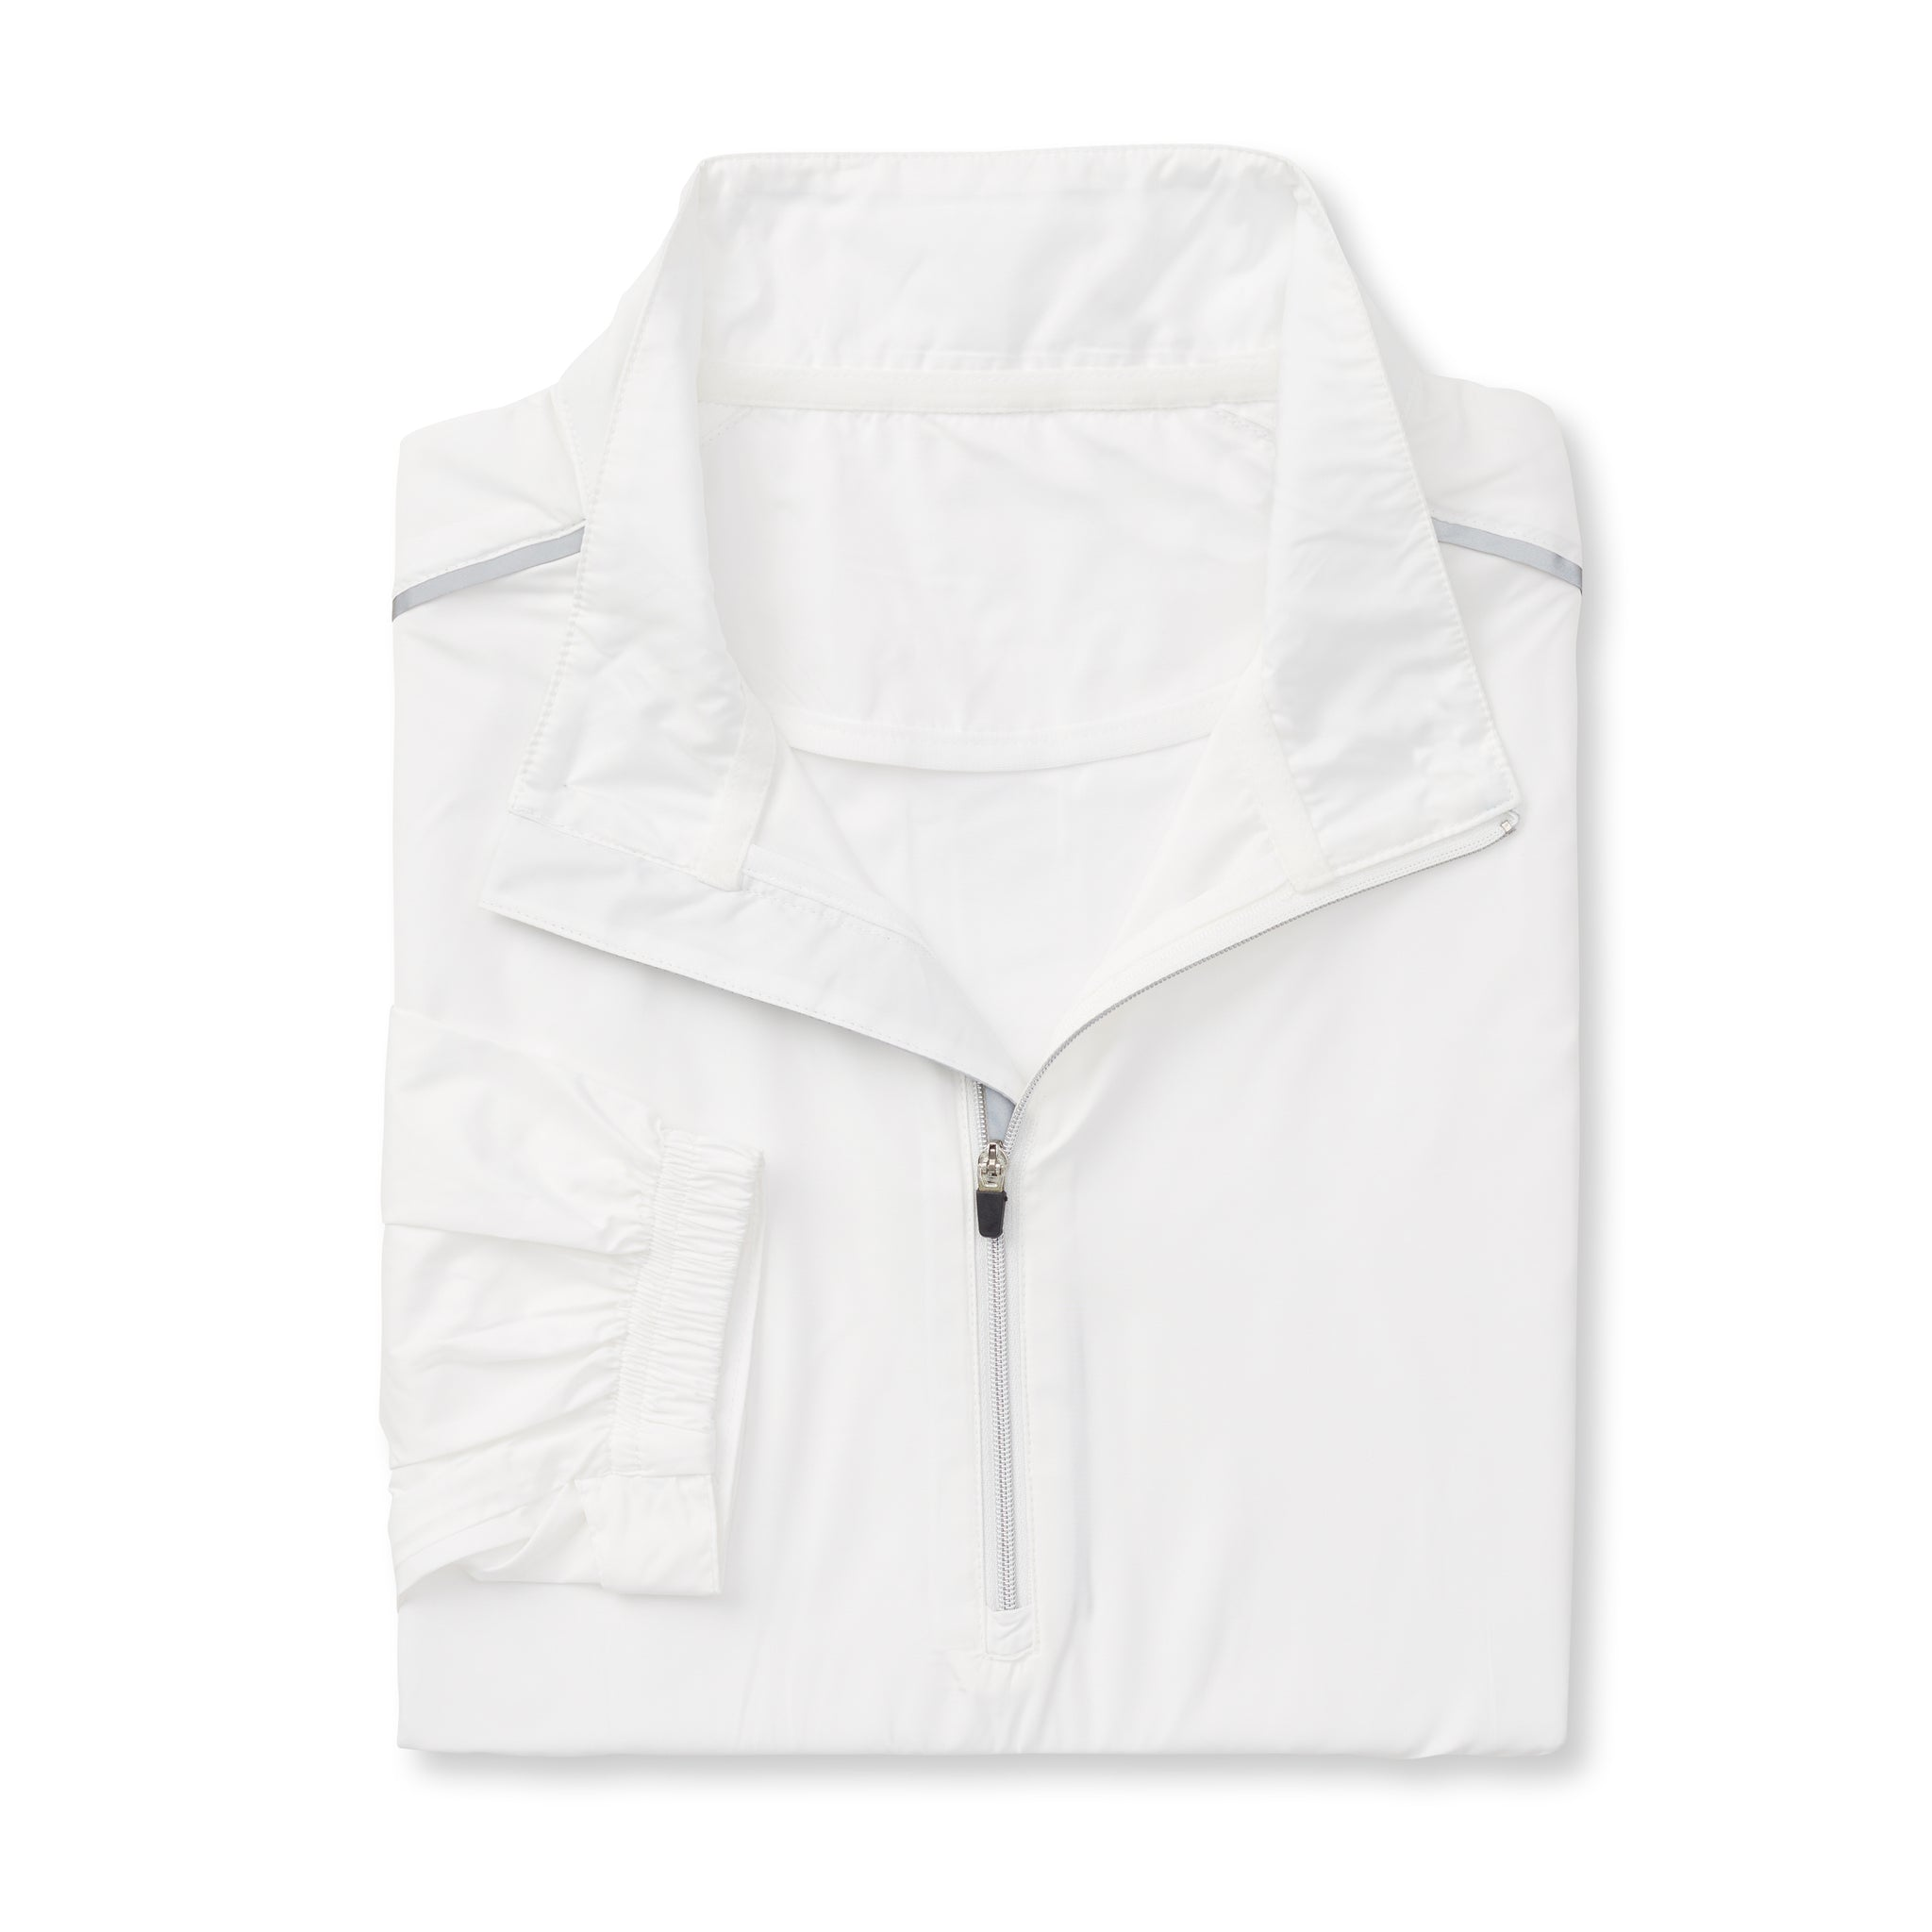 TEC WINDWEAR Half Zip Jacket - White